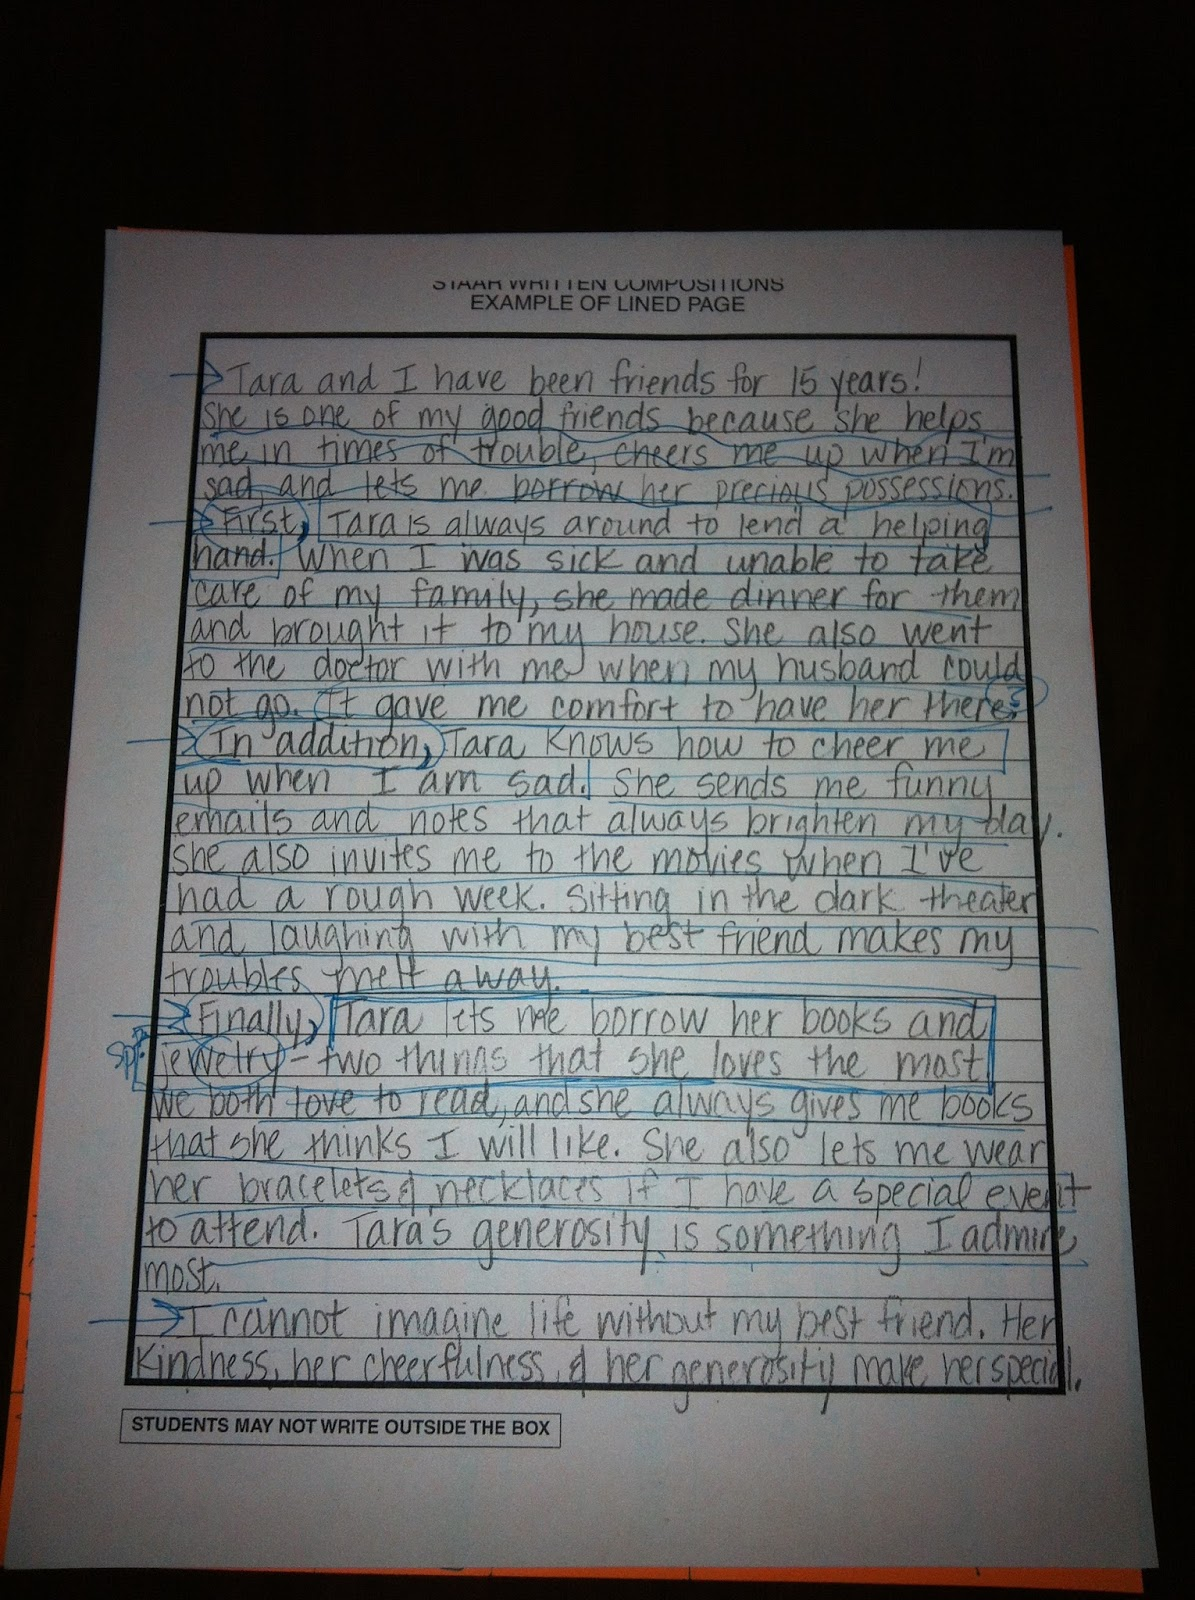 staar expository essay lined paper O meaningful transitions in expository essays  staar expository student composition released by tea, score 4  page 6 page 7 being a good reader reading is terrific it is important in many ways like it helps you know how to say words faster with punctuation and adjectives it makes you.